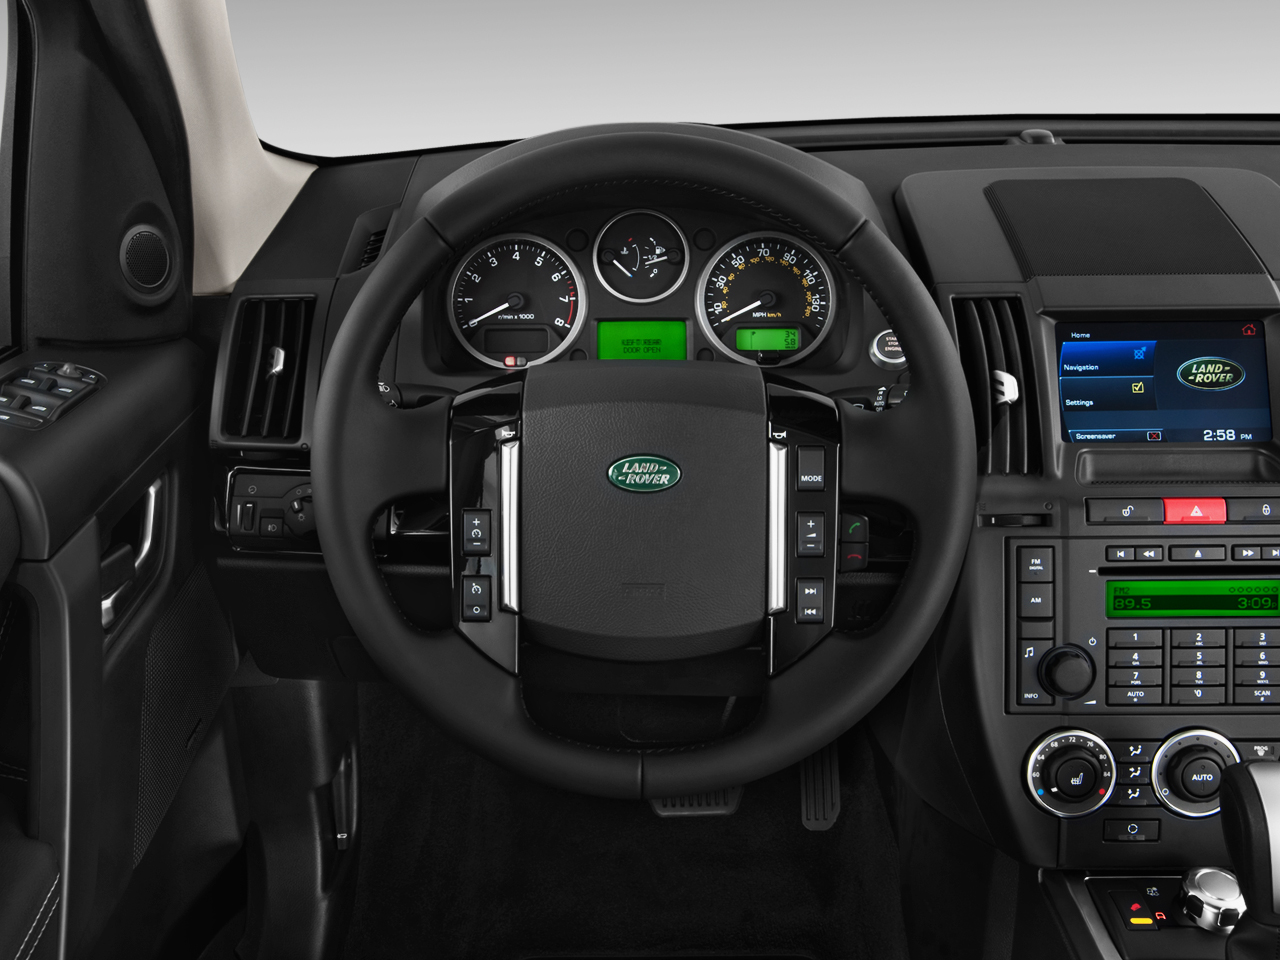 http://st.automobilemag.com/uploads/sites/10/2015/11/2012-land-rover-lr2-hse-suv-steering-wheel.png